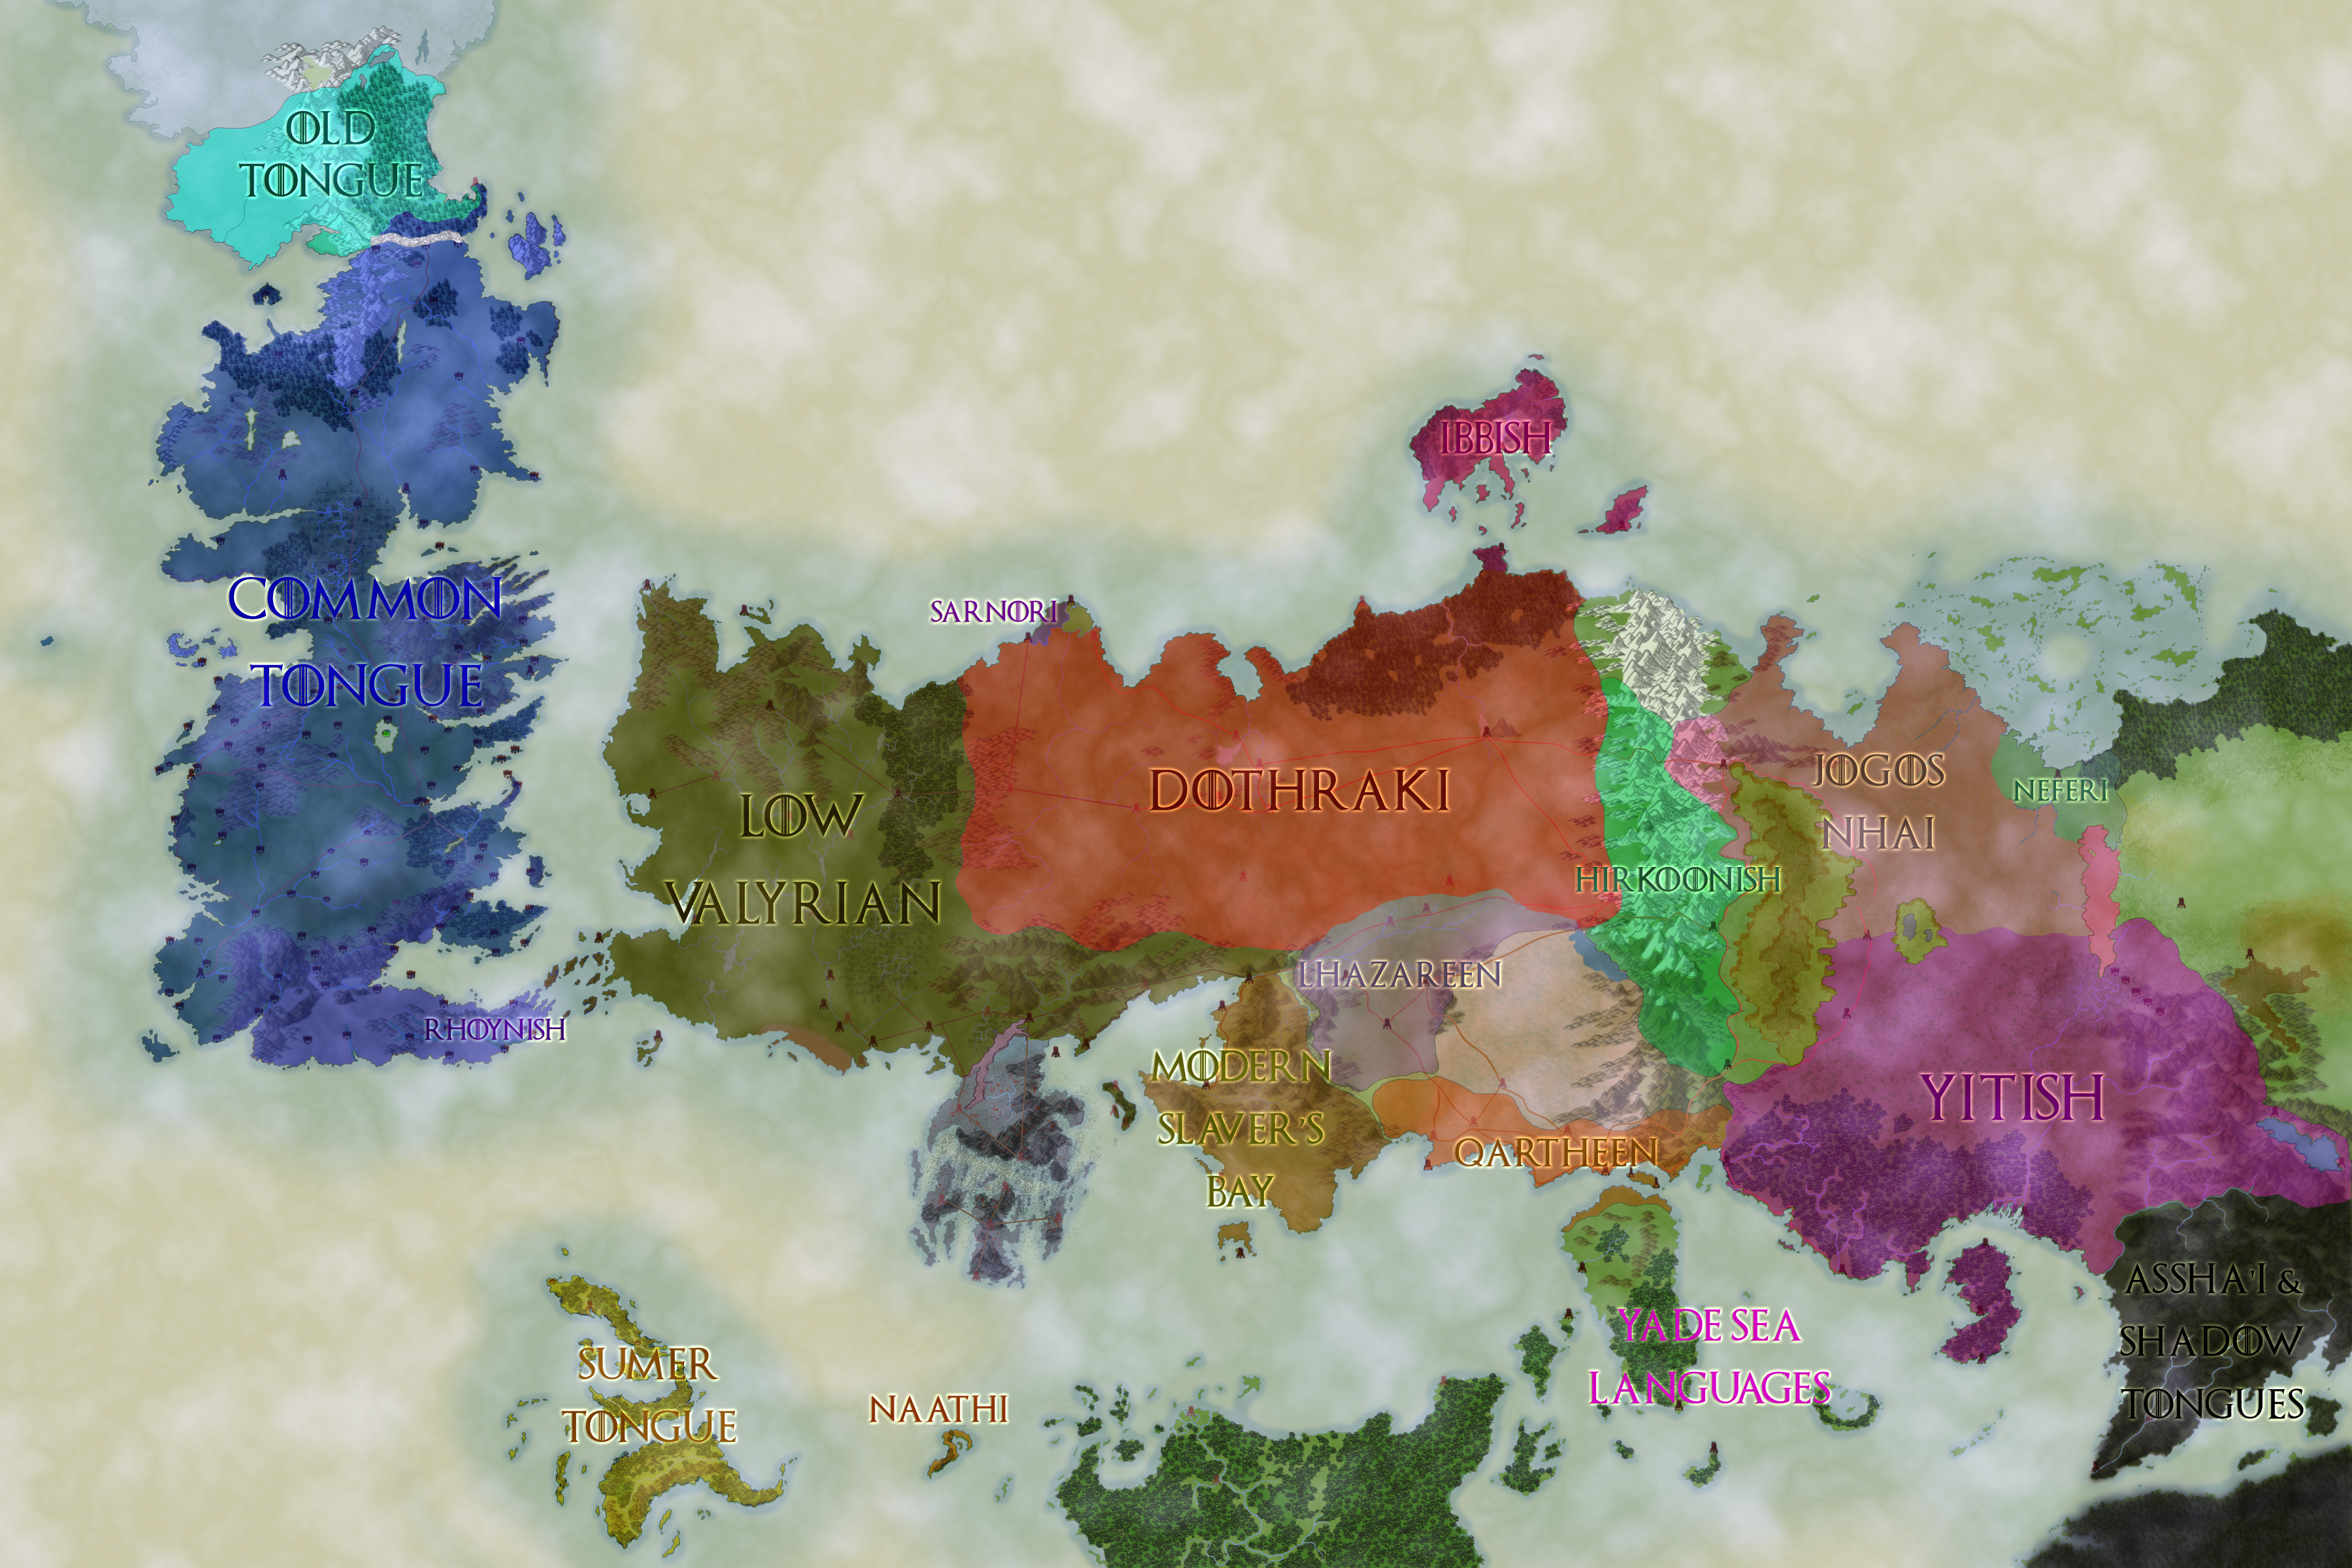 Languages and Peoples of Westeros and Essos – Indo-European.eu on game of thrones maps pdf, game of thrones qarth, game of thrones city braavos, game of thrones banners, game of thrones wallpaper 1280x1024, game of thrones house tyrell, game of thrones maps hbo, game of thrones family tree house, game of thrones diagram, game of thrones yi ti, game of thrones maps and families, game of thrones 4d puzzle, game of thrones sothoryos, hd map of westeros essos, game of thrones king's landing minecraft, official map of essos, game of thrones all books, game of thrones poster,